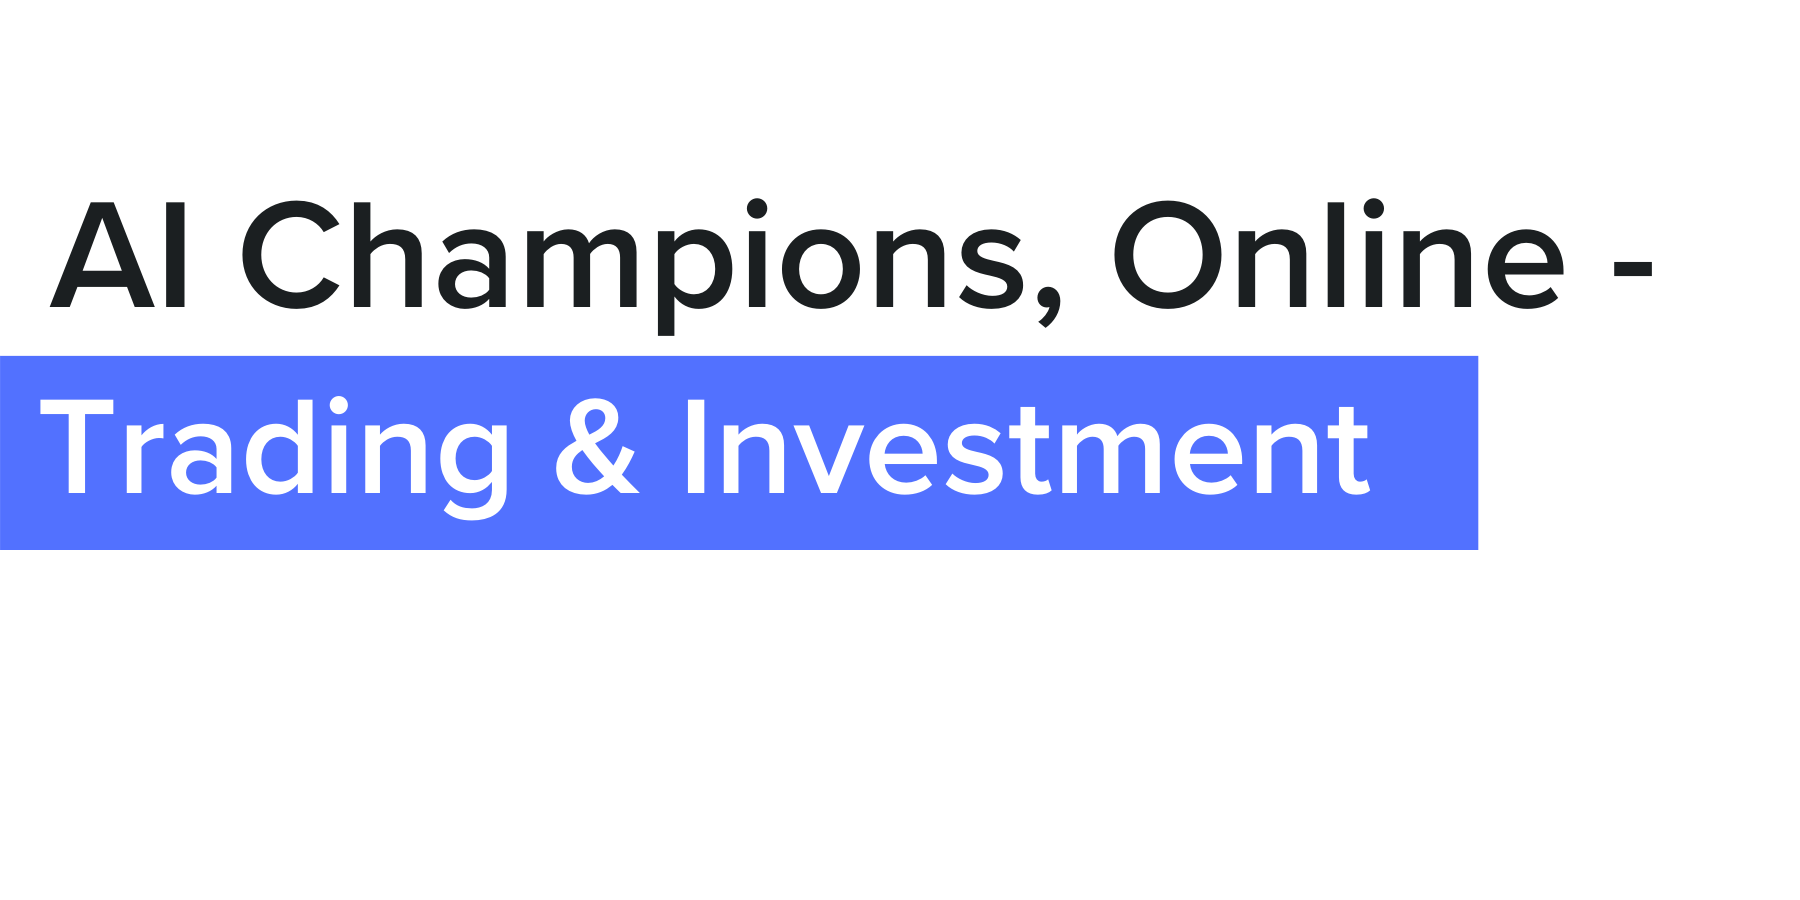 AI Champions, Online - Trading & Investment | October 6 - 9, 2020